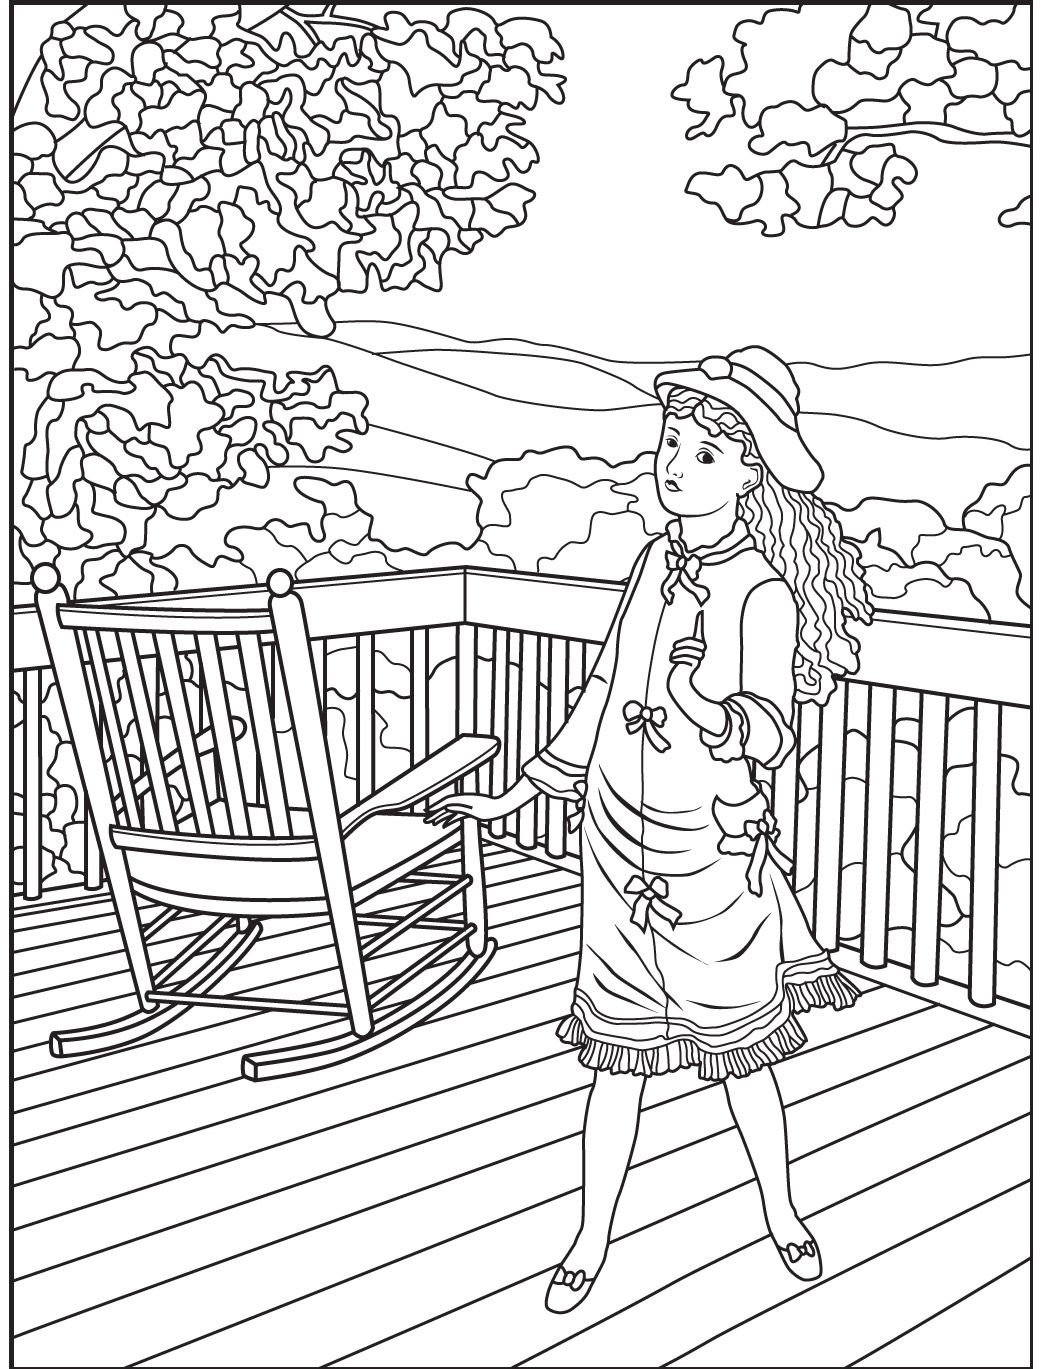 Veranda Coloring Page Colorish Free App For Adults By Goodsofttech